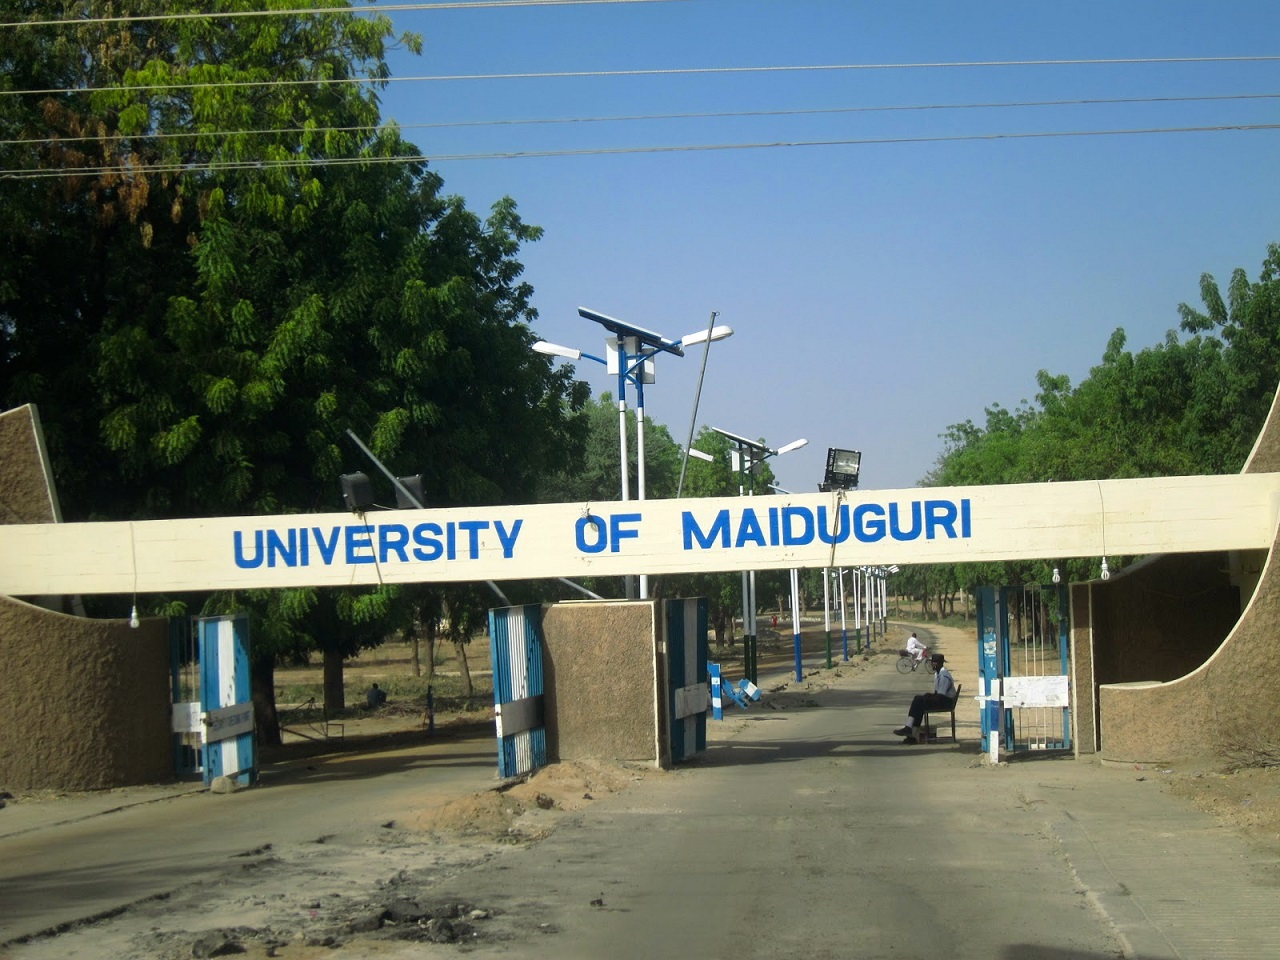 Twin bomb blasts rock university of Maiduguri in Nigeria, 1 dead